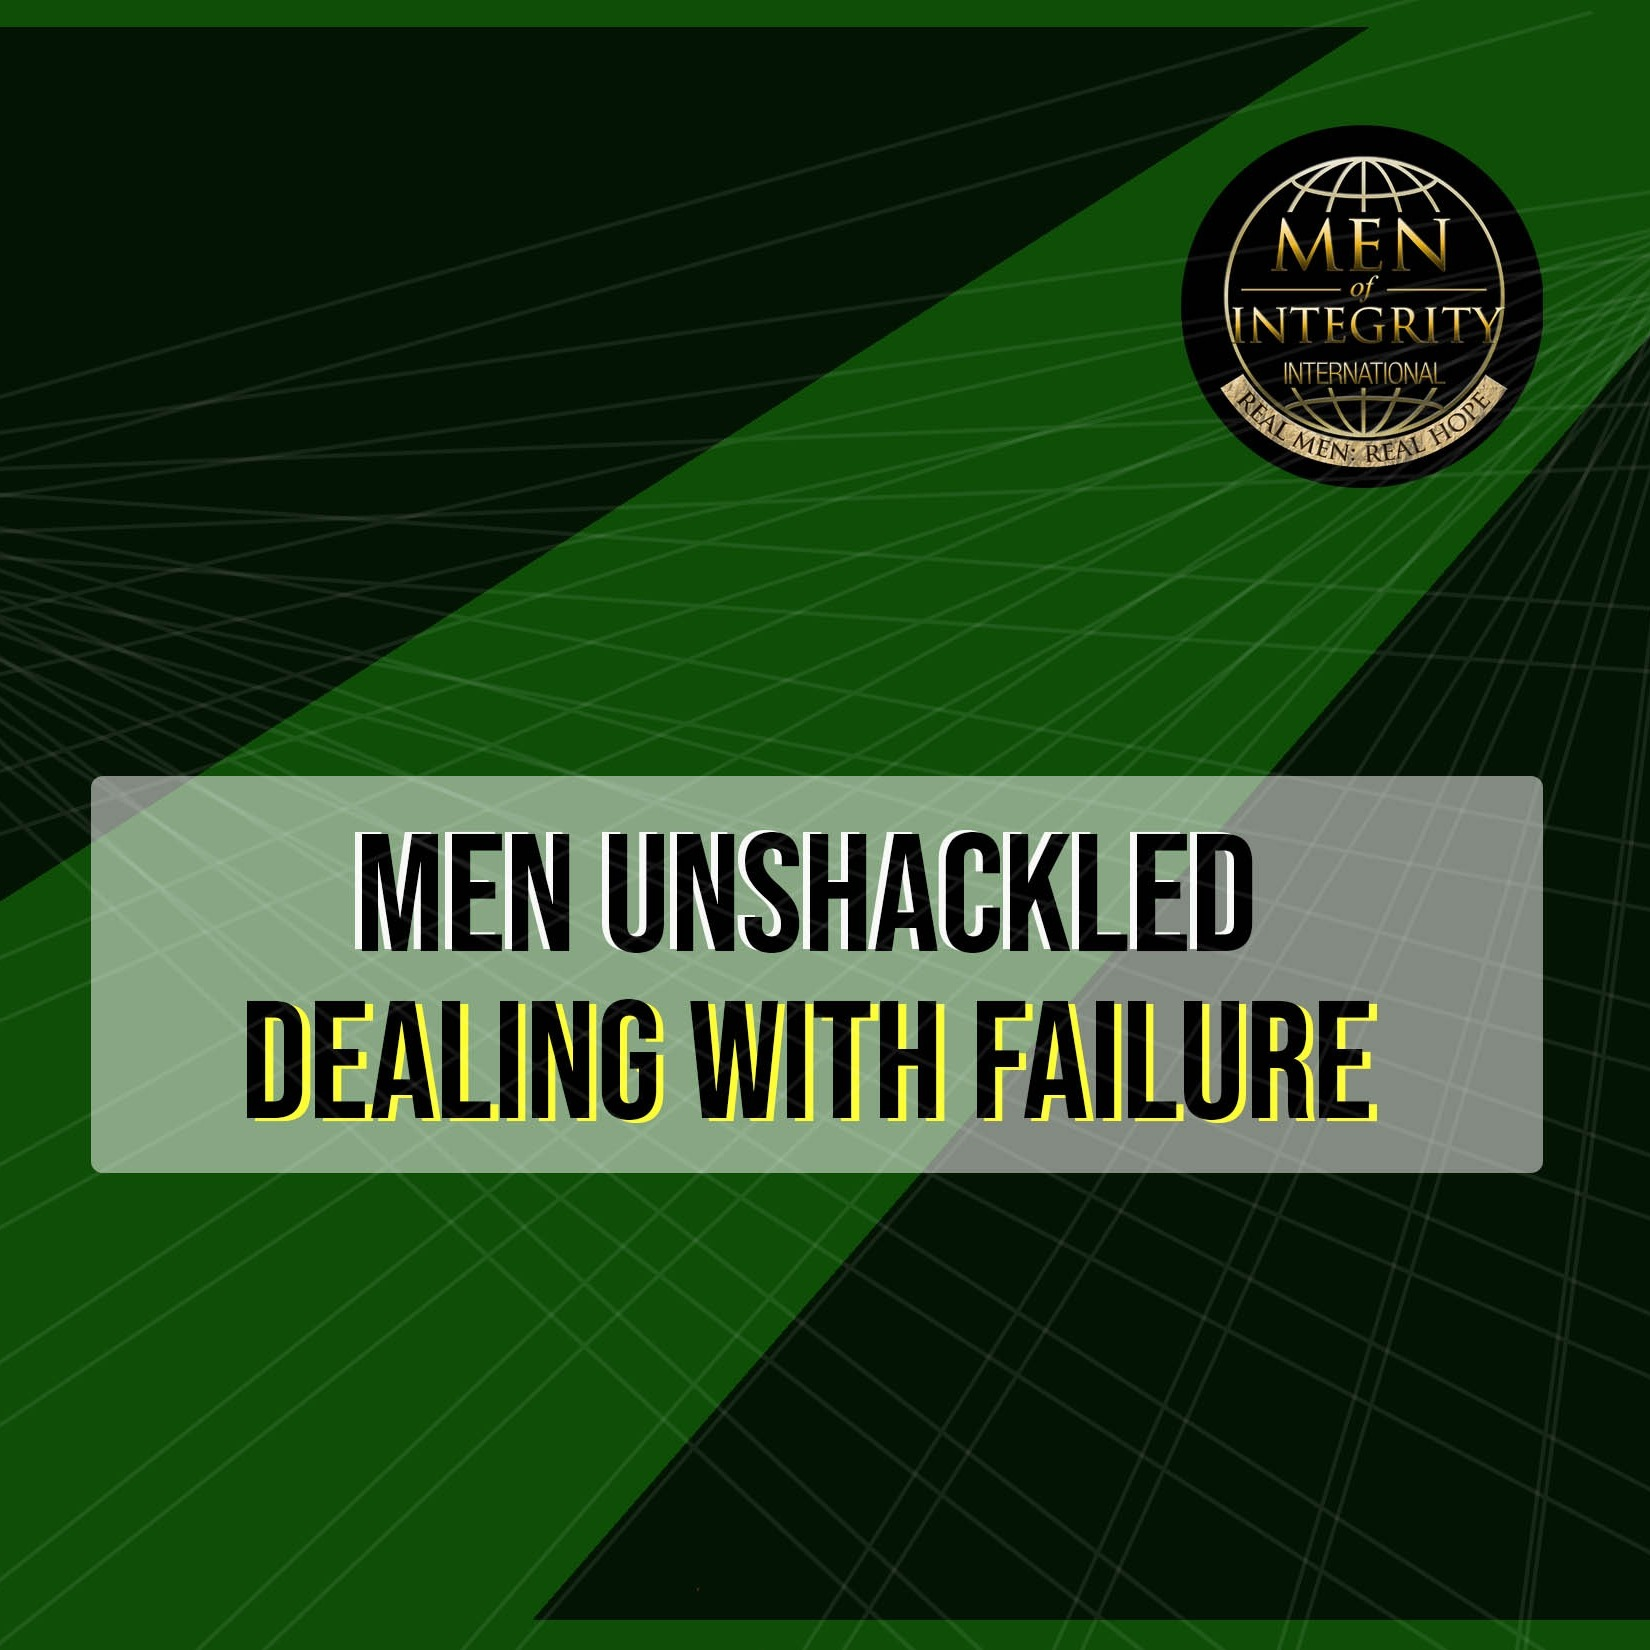 Men Unshackled: Dealing with Failure